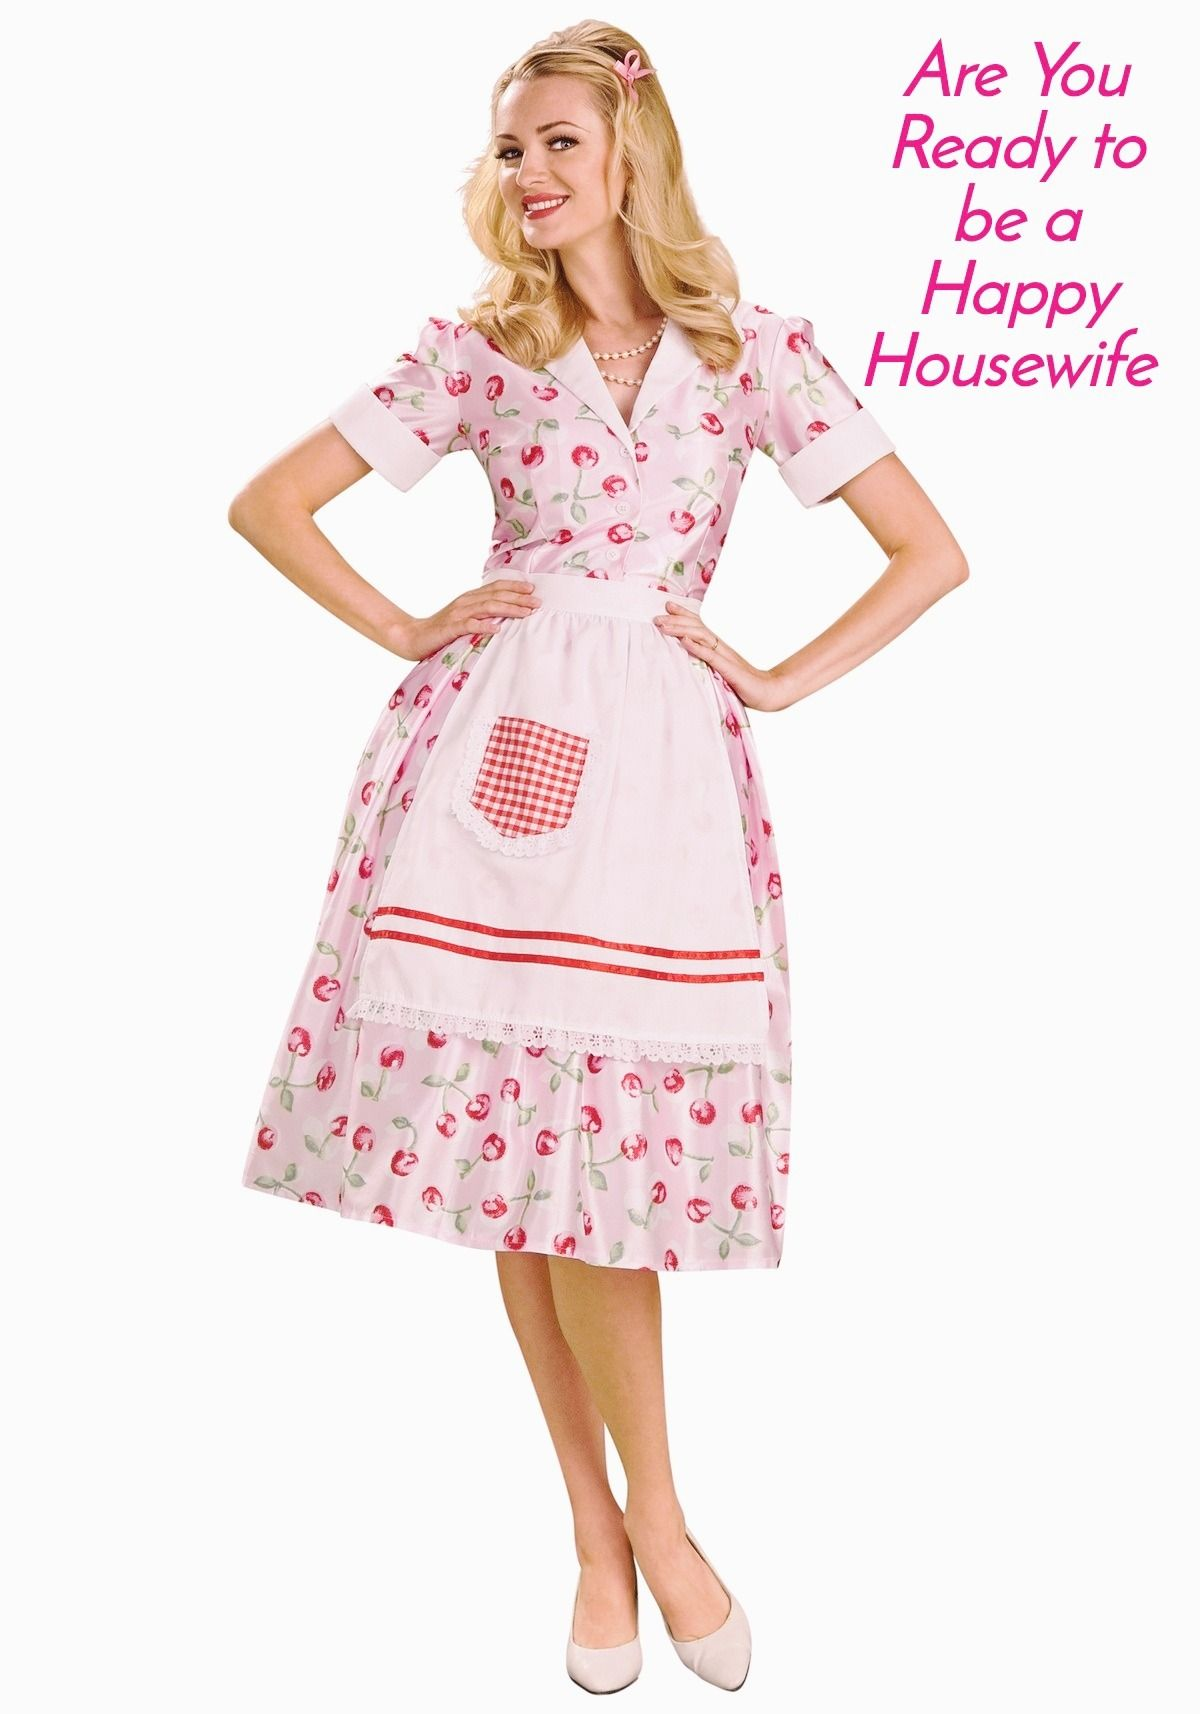 LouiseLonging in 2020 Housewife dress, Housewife costume